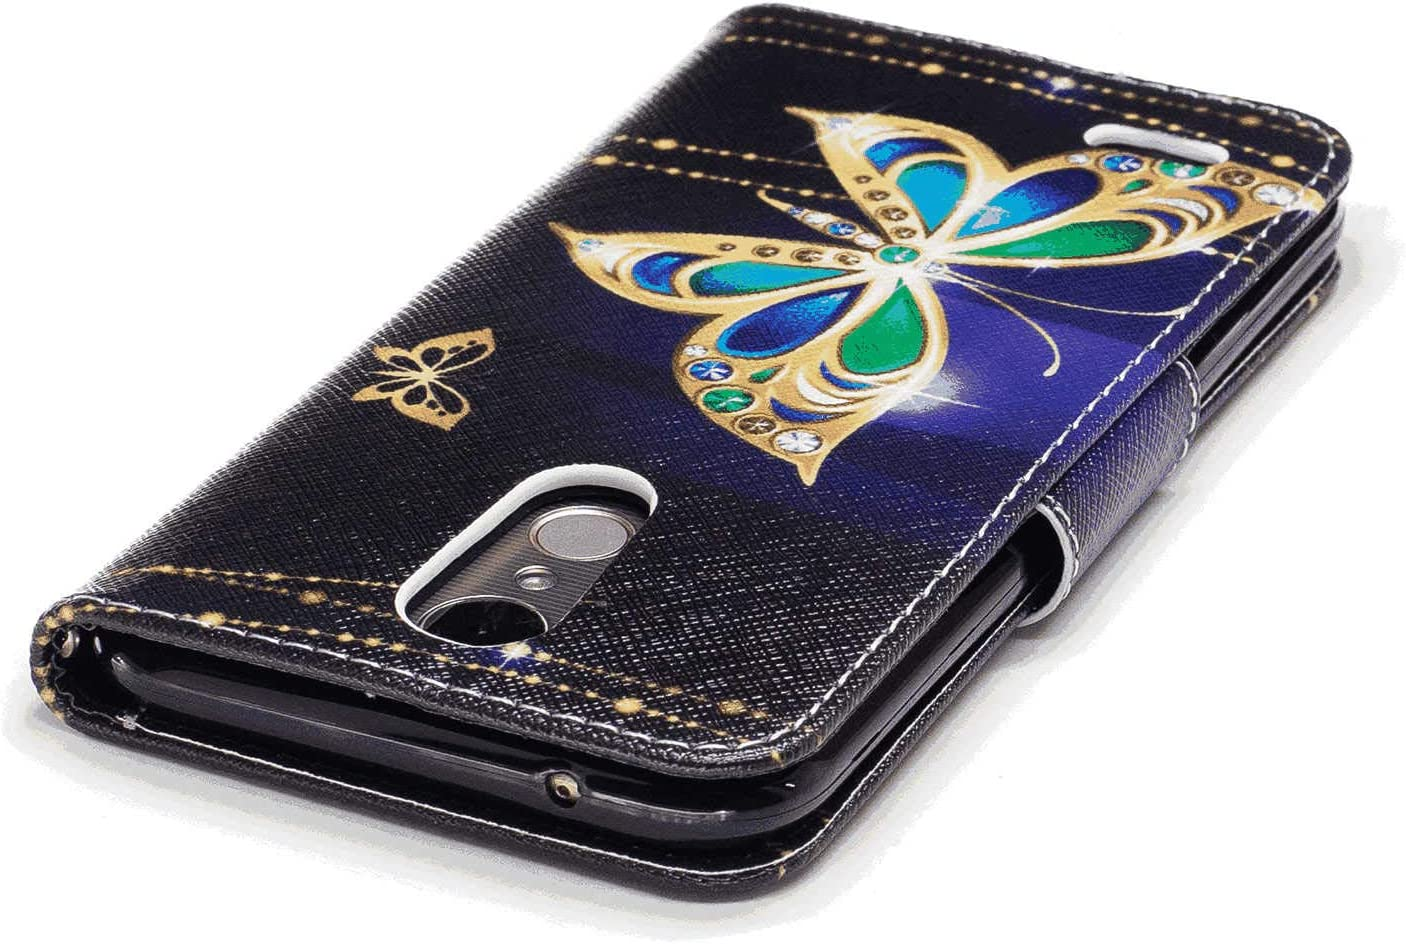 Samsung Galaxy S8 Flip Case Cover for Leather Card Holders Kickstand cell phone case Premium Business Flip Cover